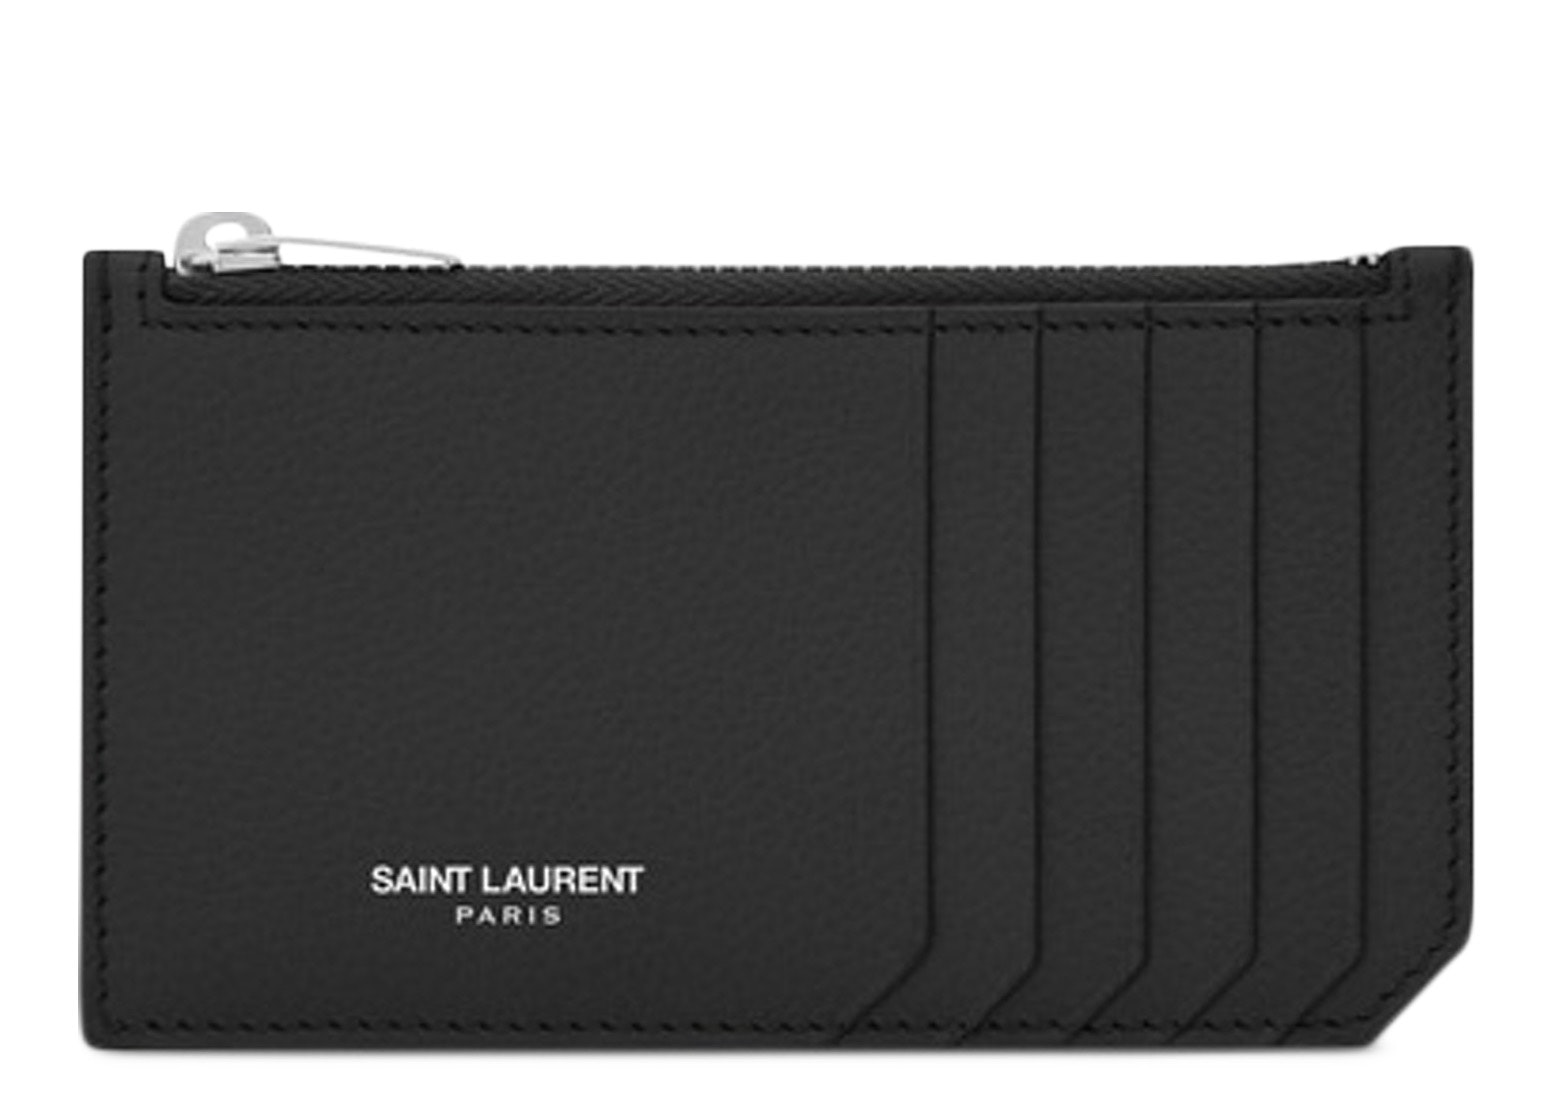 Saint Laurent 5 Fragments Pouch Card Case Grained Leather Black